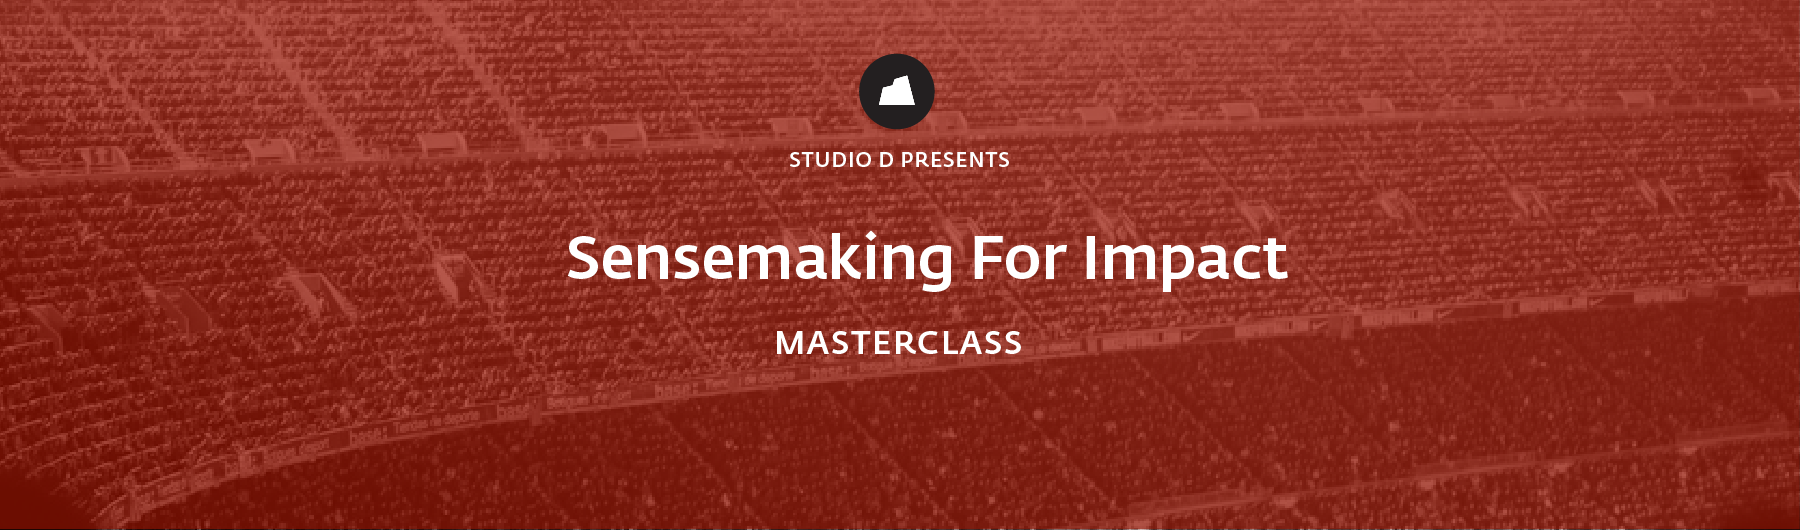 Sensemaking For Impact Masterclass, 6 April 2020, Munich